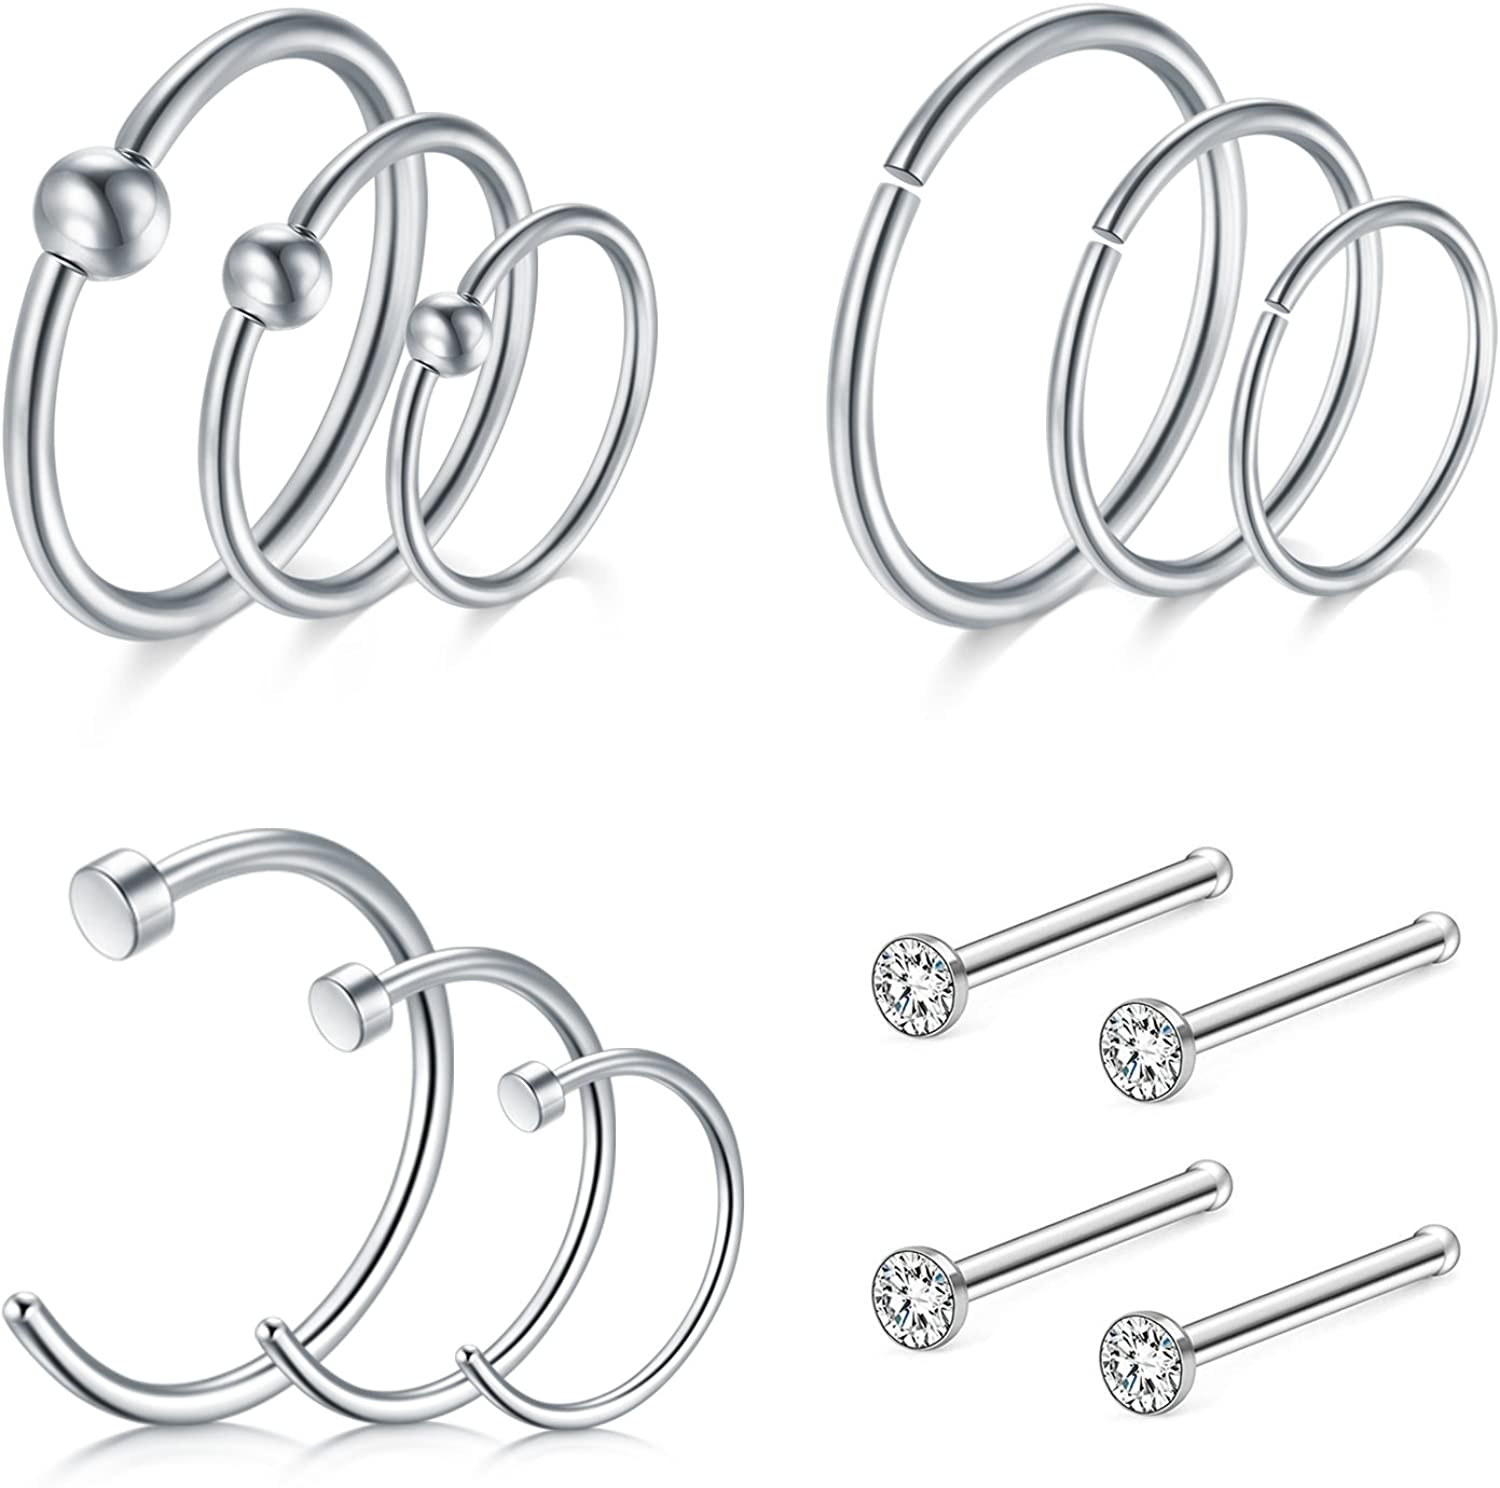 D.Bella Nose Rings 24pcs 20G 10mm 12mm Nose Hoops Rings Stainless Steel Nose Piercing Body Jewelry Set